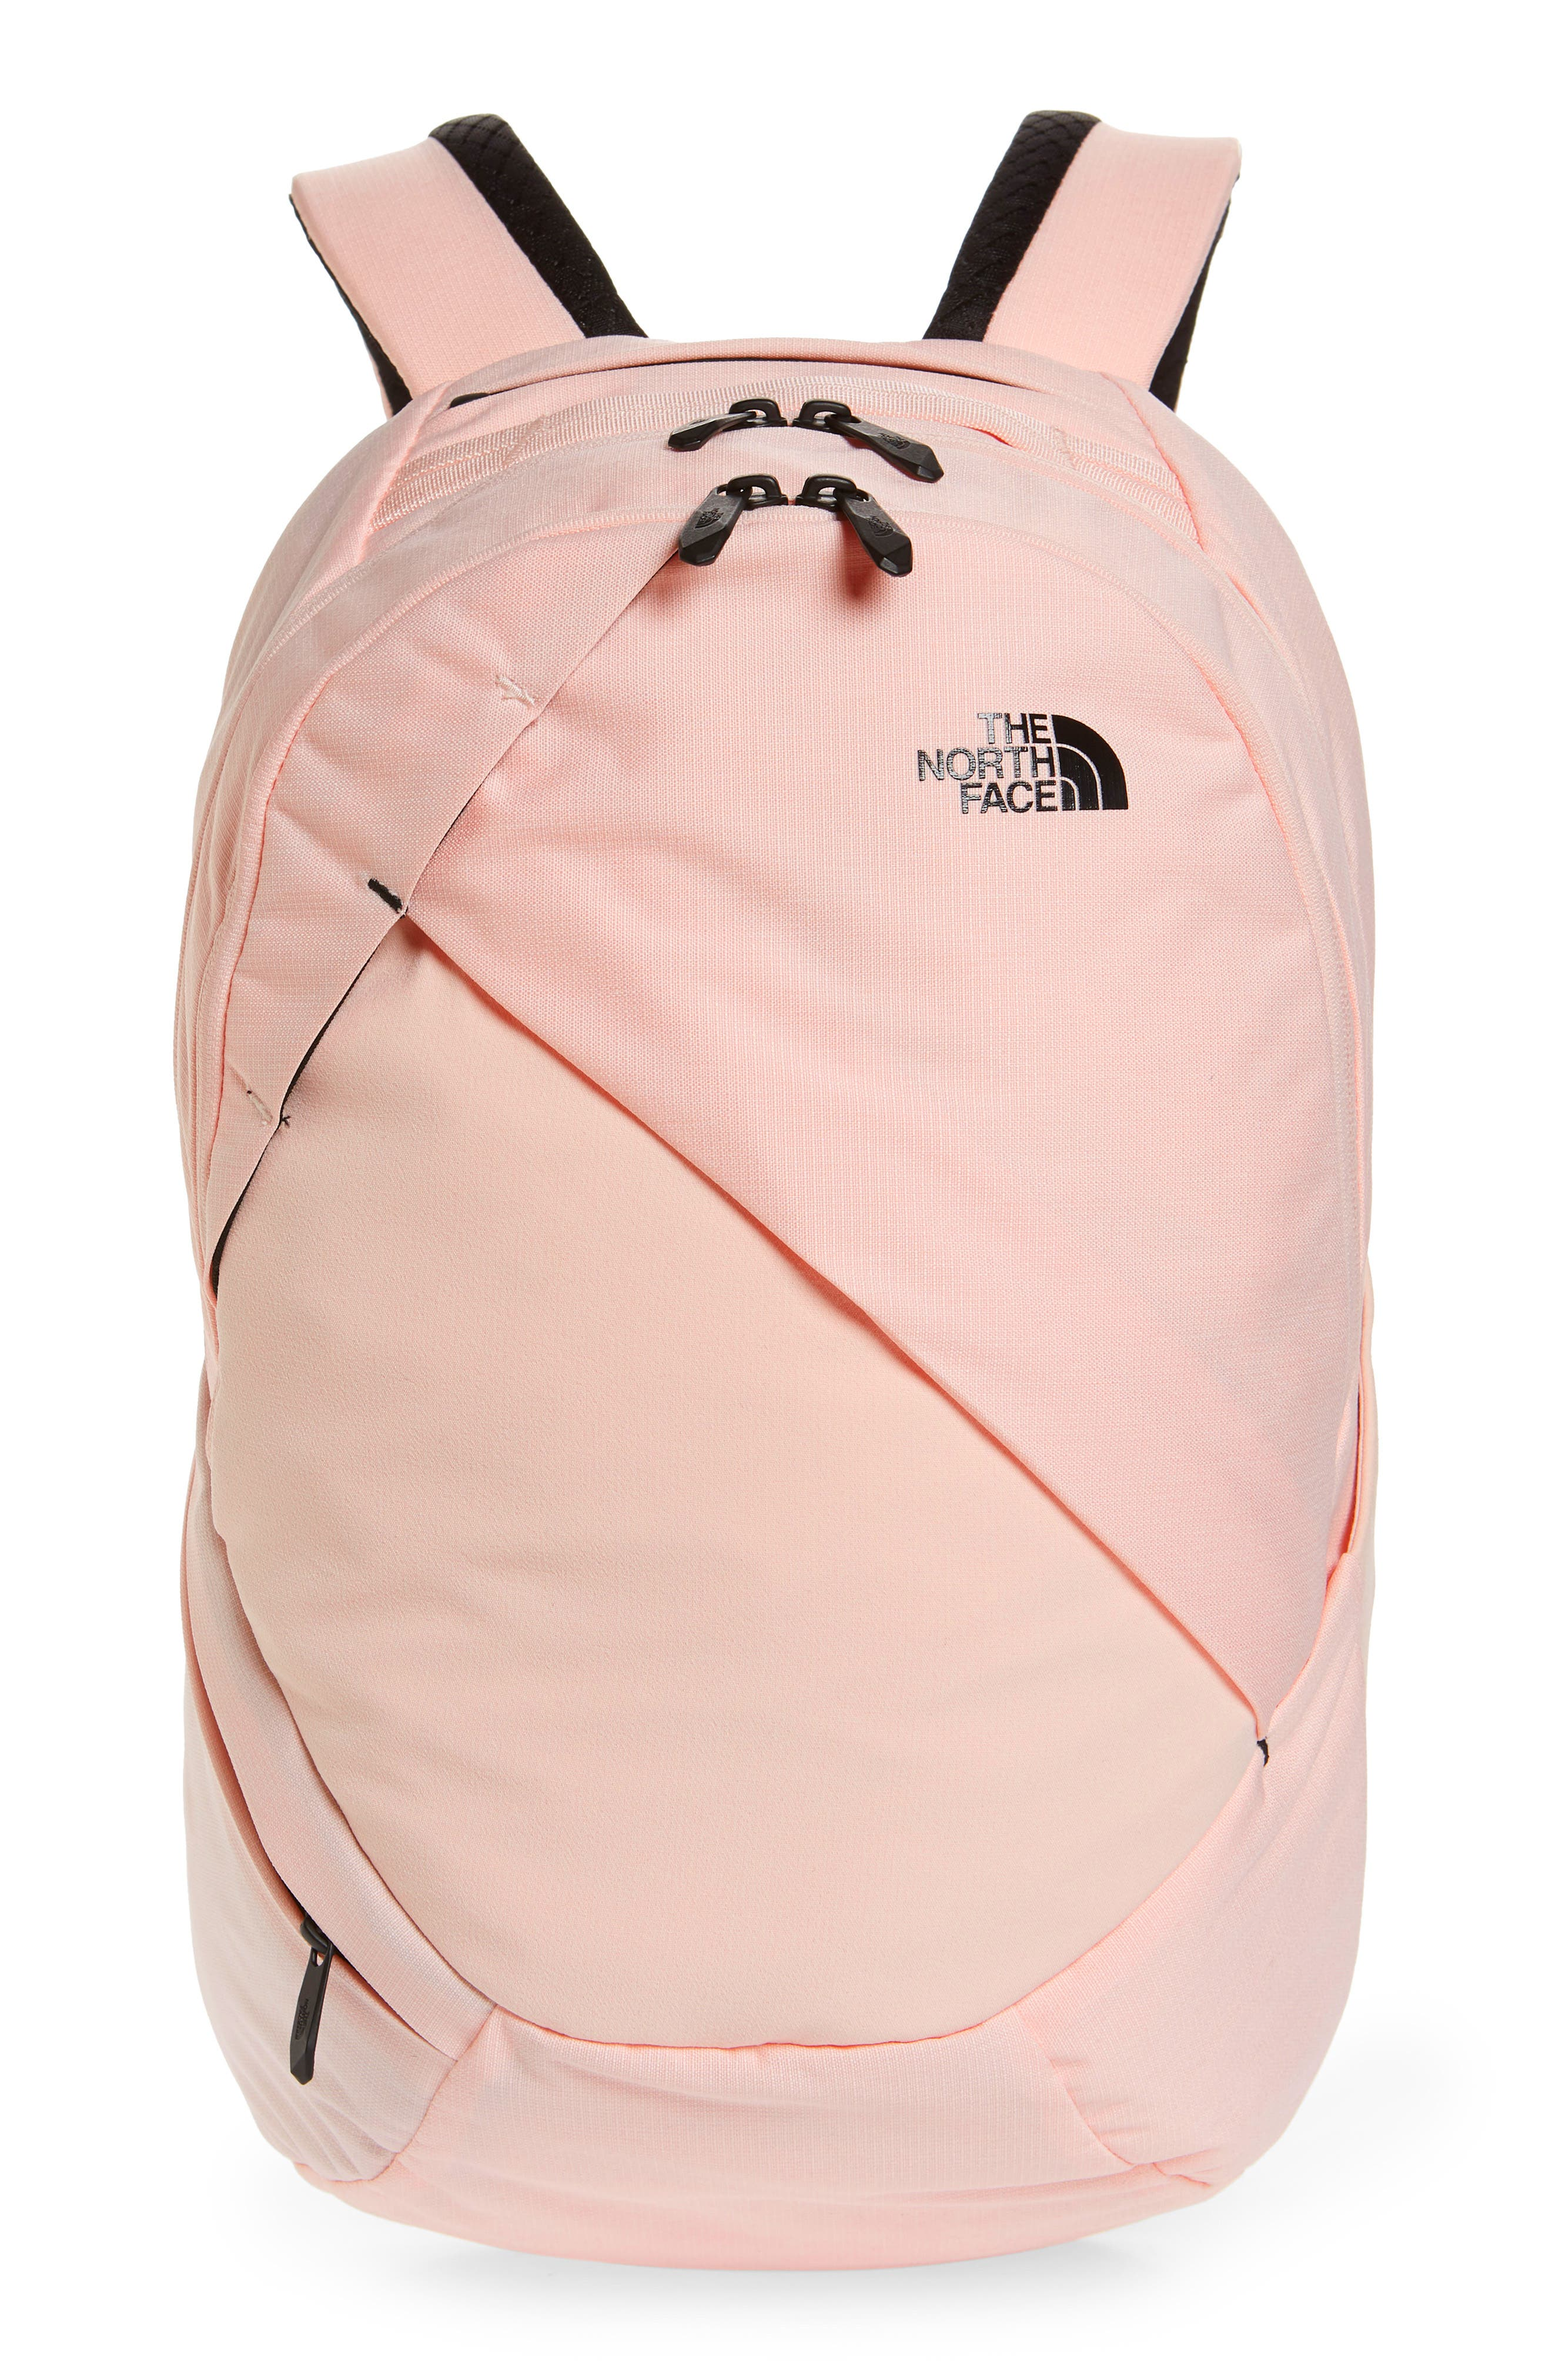 THE NORTH FACE, 'Isabella' Backpack, Main thumbnail 1, color, PINK LIGHT HEATHER/ TNF BLACK